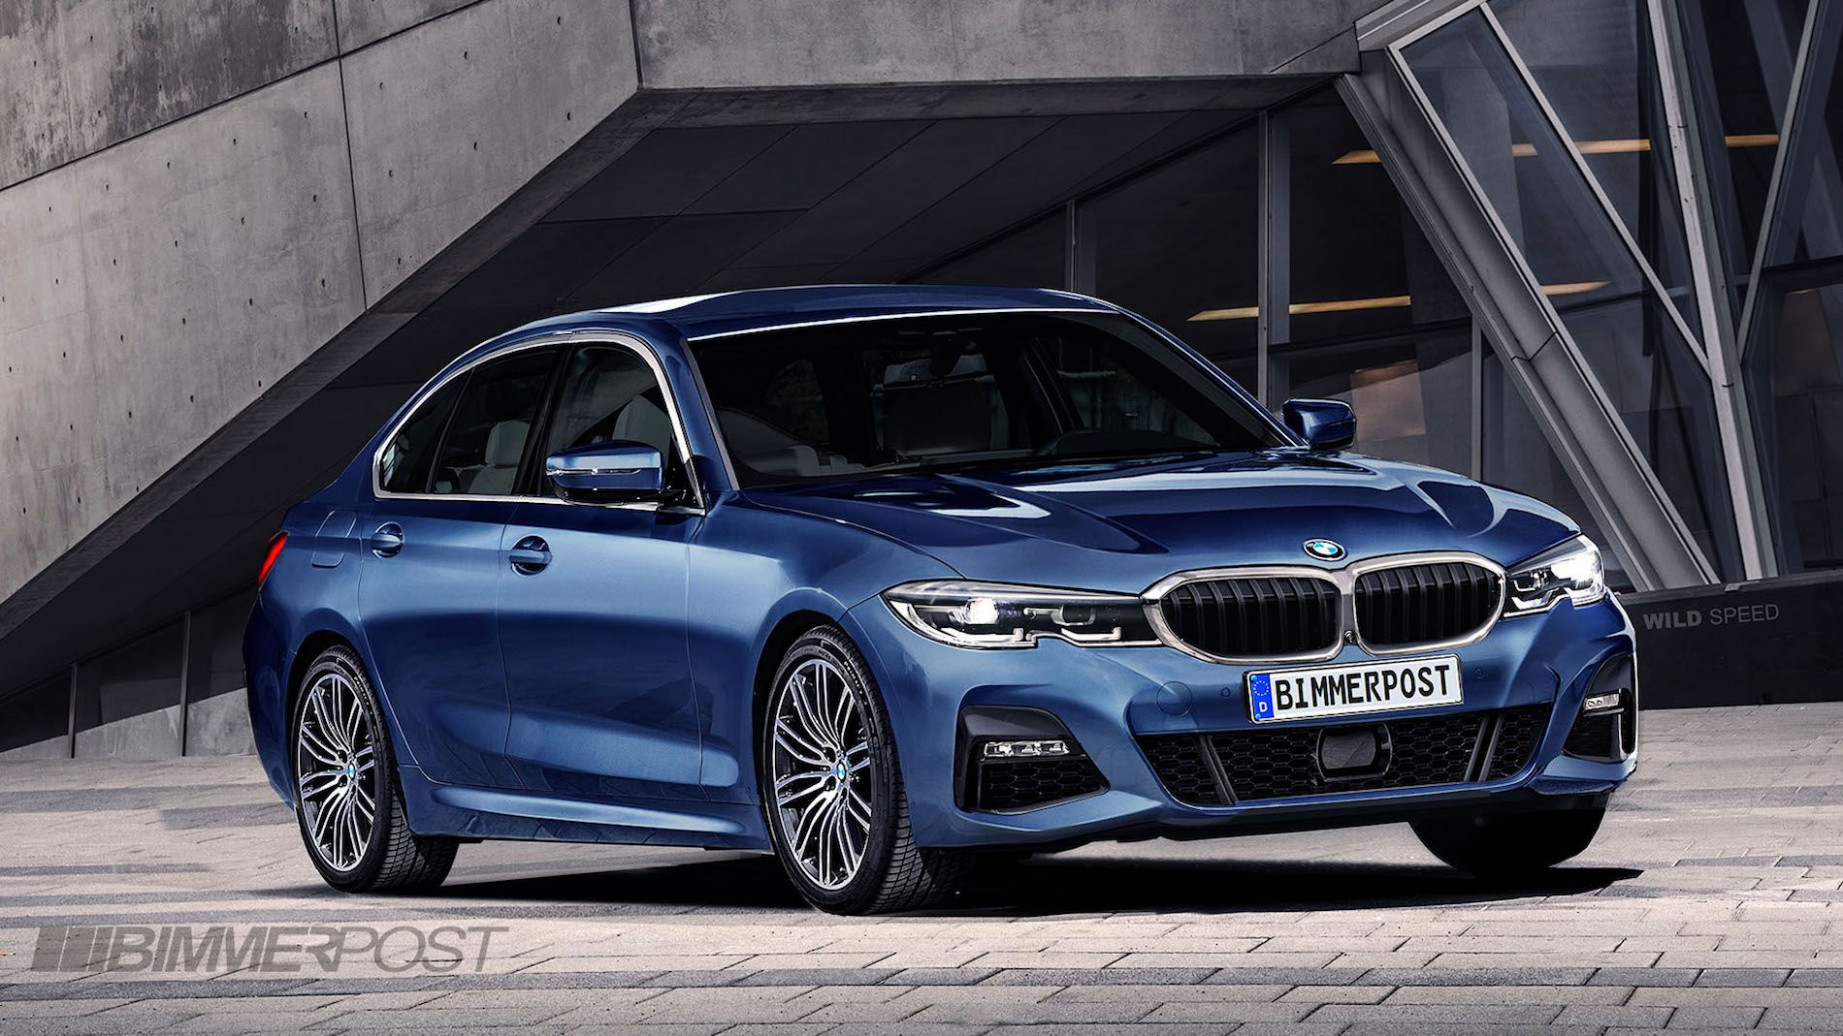 Specs Spy Shots BMW 3 Series